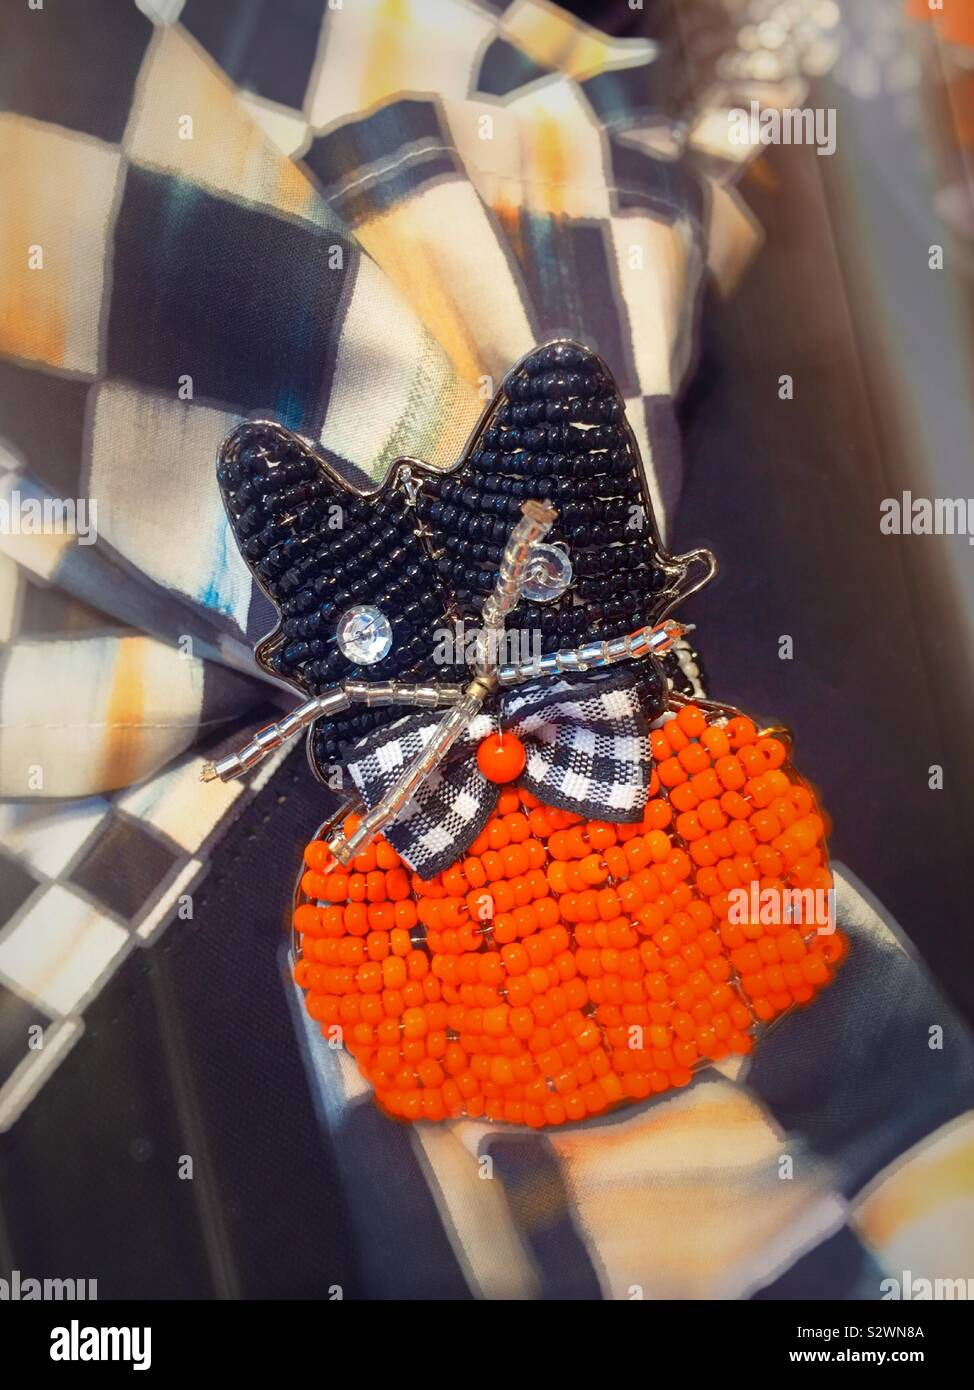 Halloween Themed Napkin Holder Of A Black Cat And Pumpkin Beads Mackenzie Childs Home Decor Store In Soho New York City United States Stock Photo Alamy